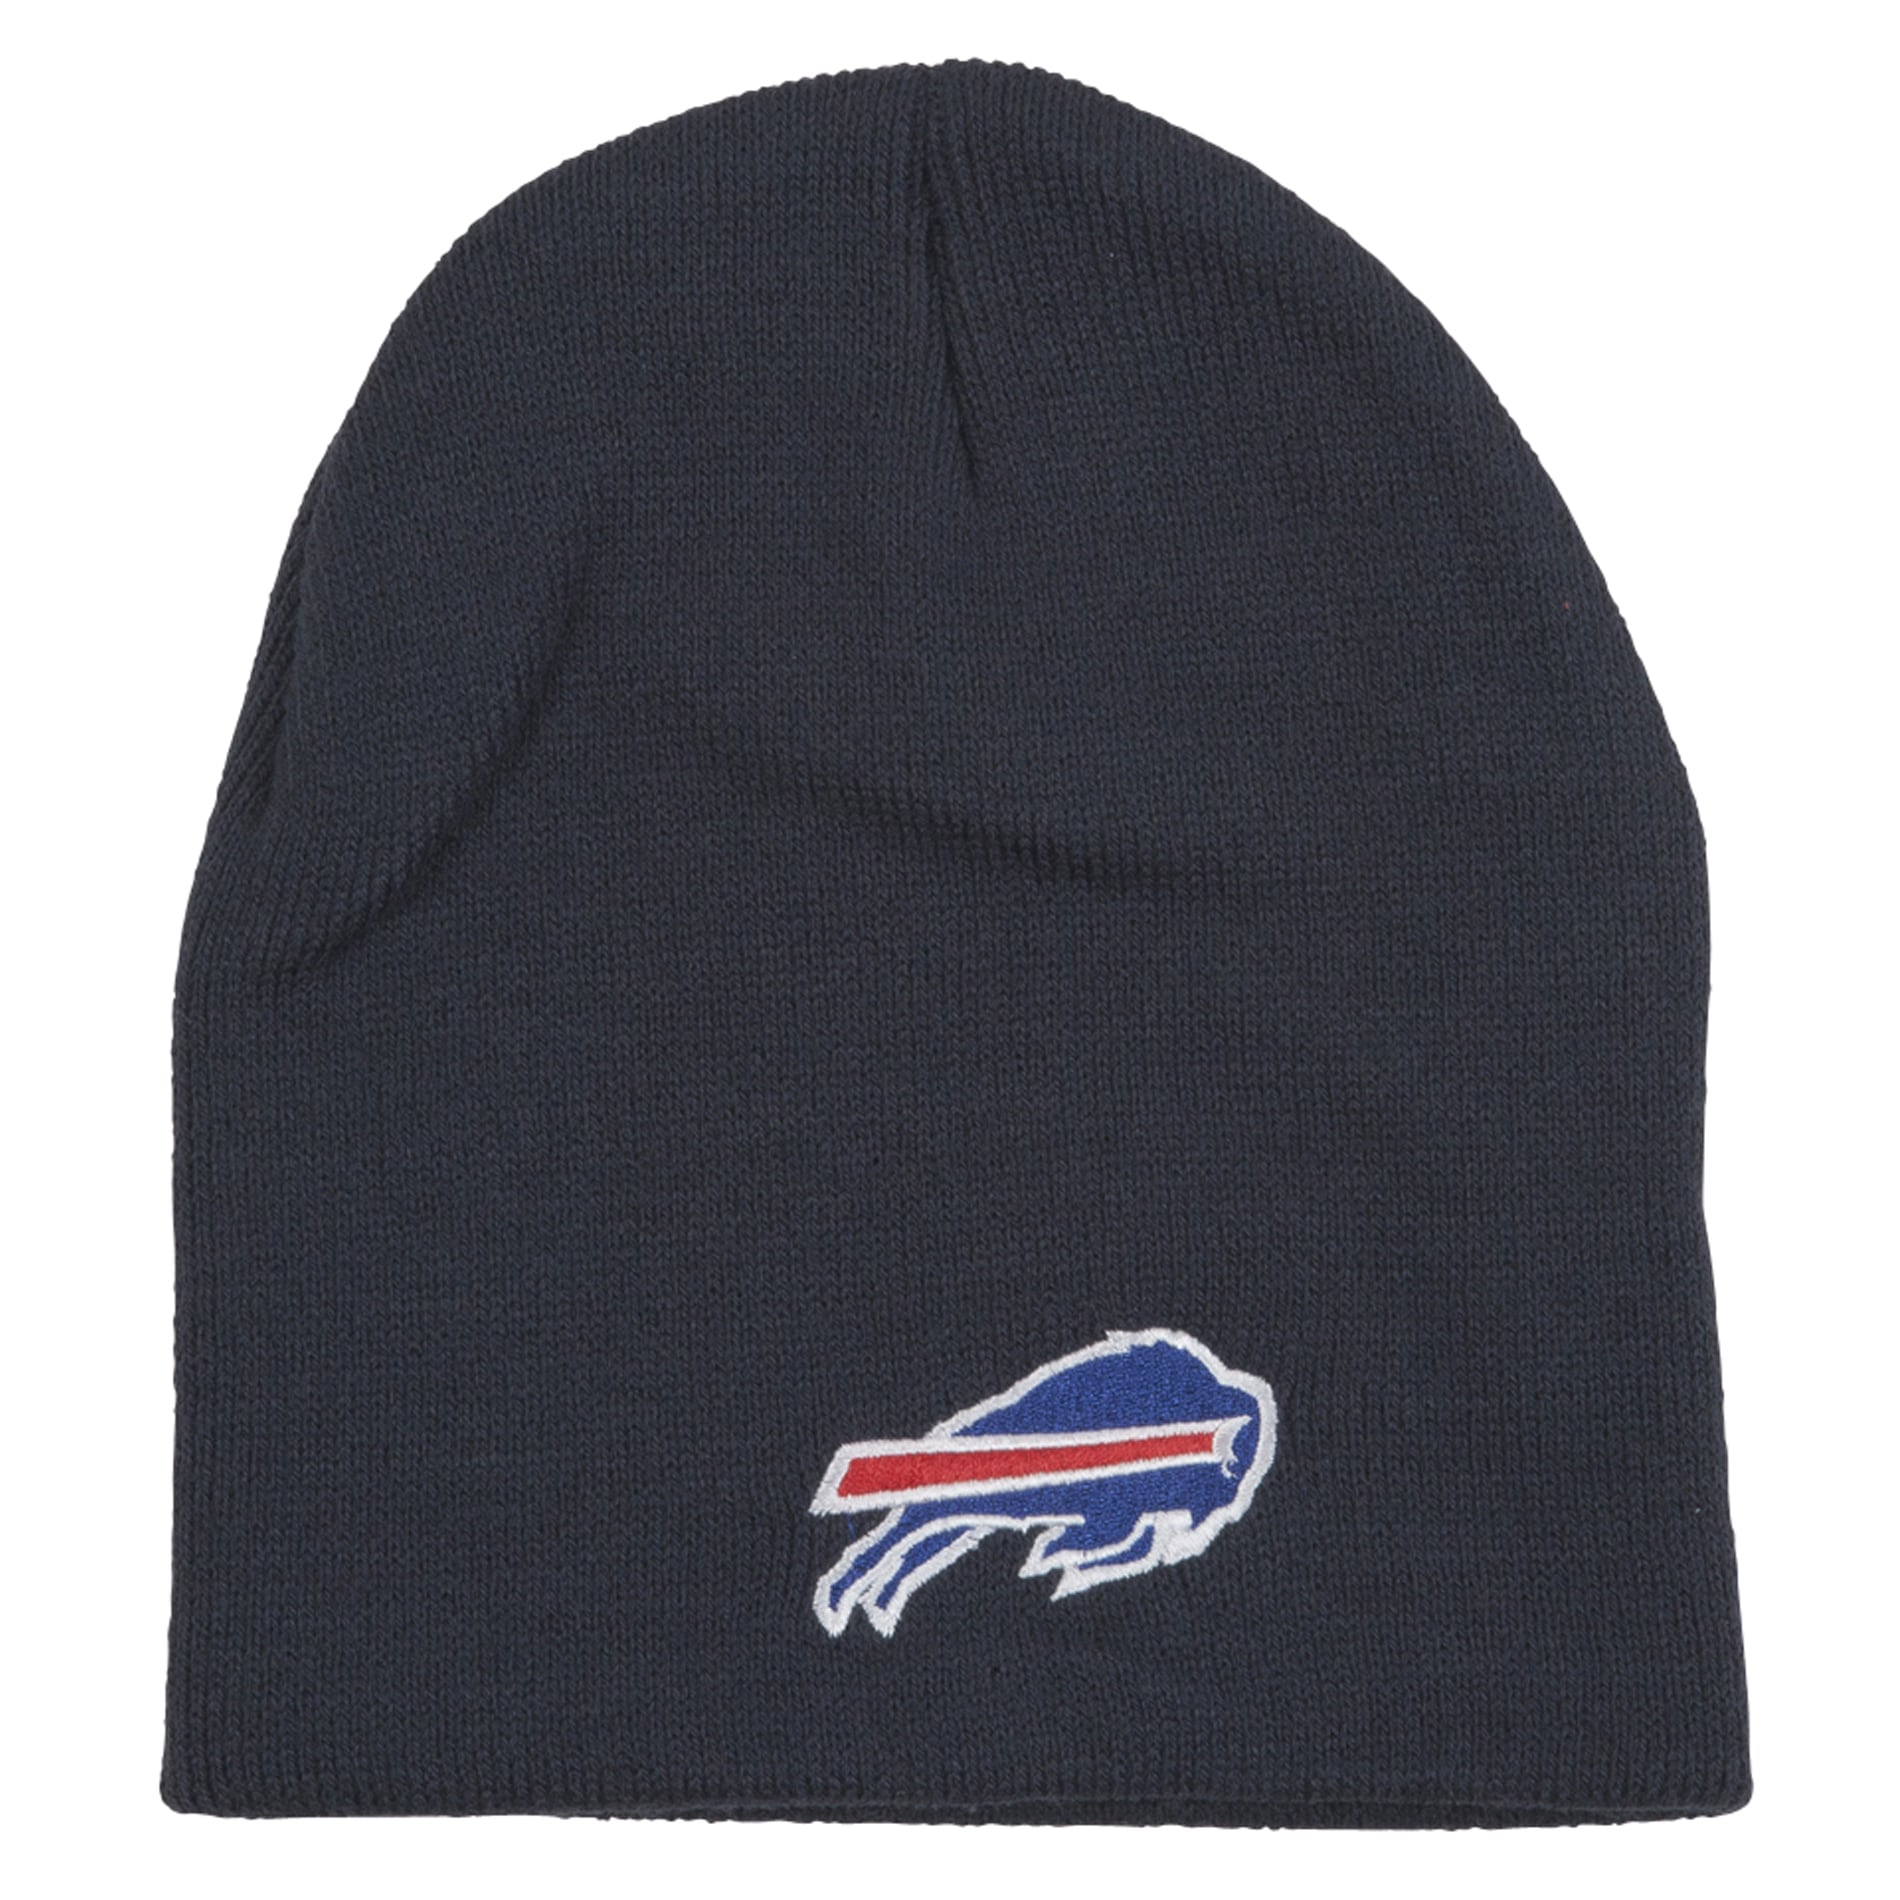 Buffalo Bills Beanie Stocking Hat